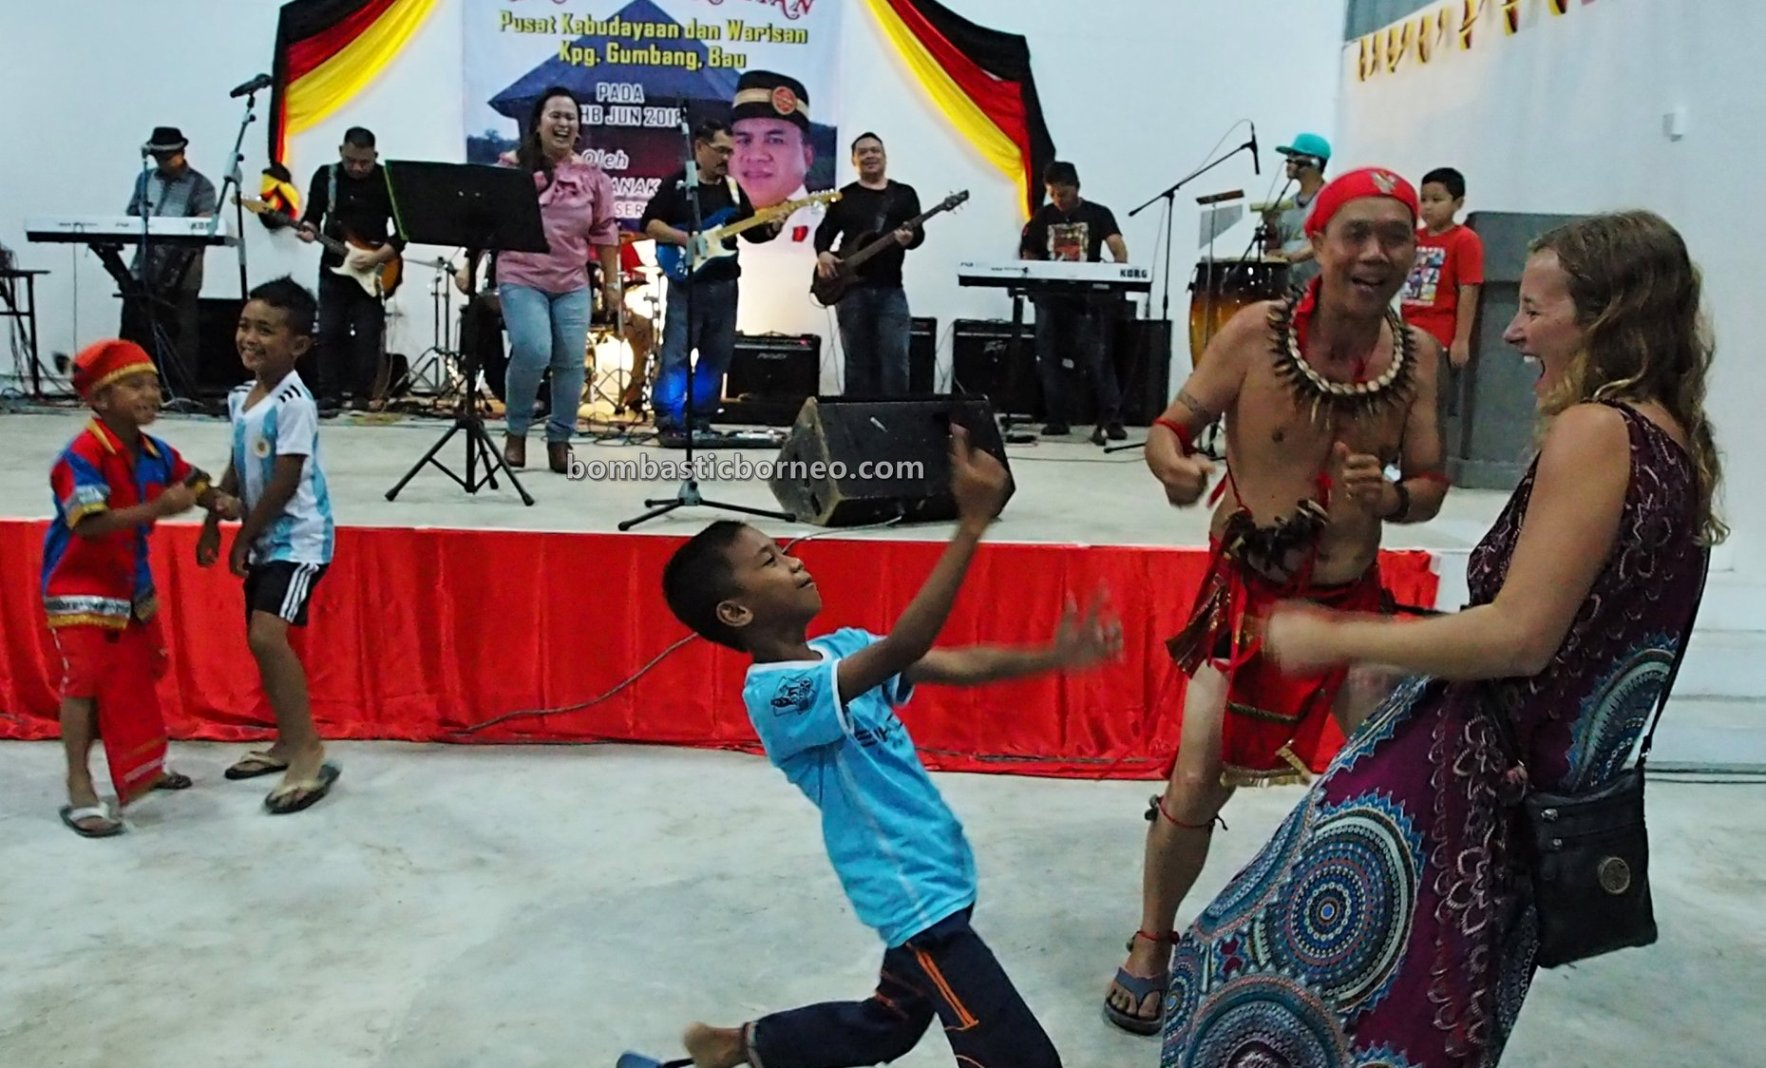 Dayak Bidayuh, thanksgiving, backpackers, destination, Borneo, Kuching, Malaysia, culture, event, Ethnic, native, Tourism, travel guide, 婆罗洲游踪, 砂拉越达雅丰收节日